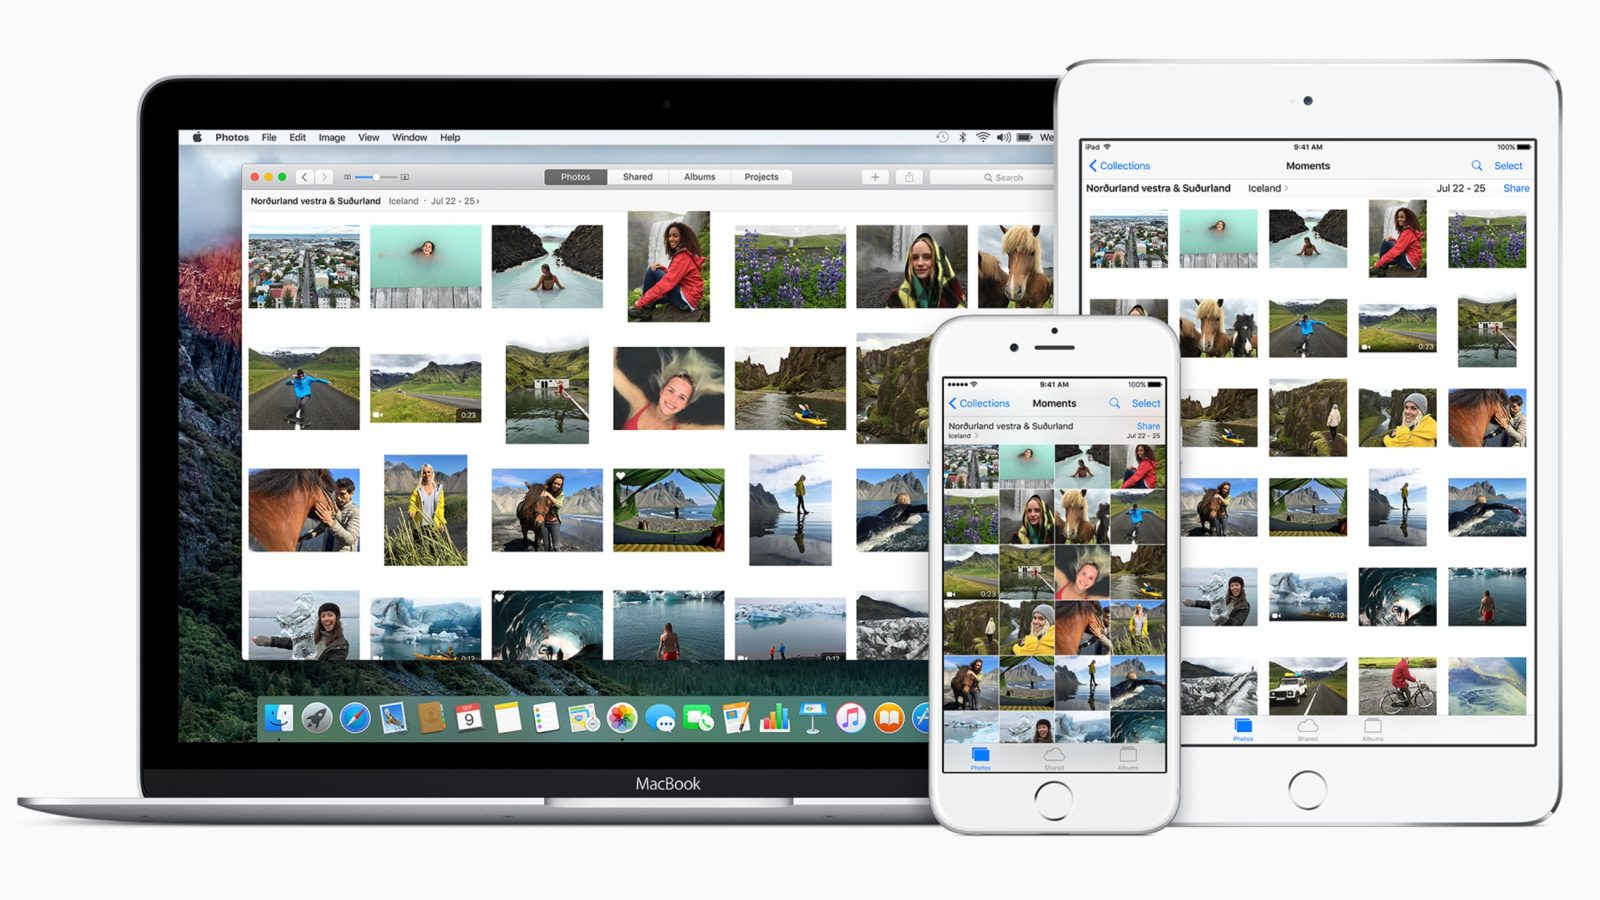 How to import videos from iPhone to Mac - 9to5Mac